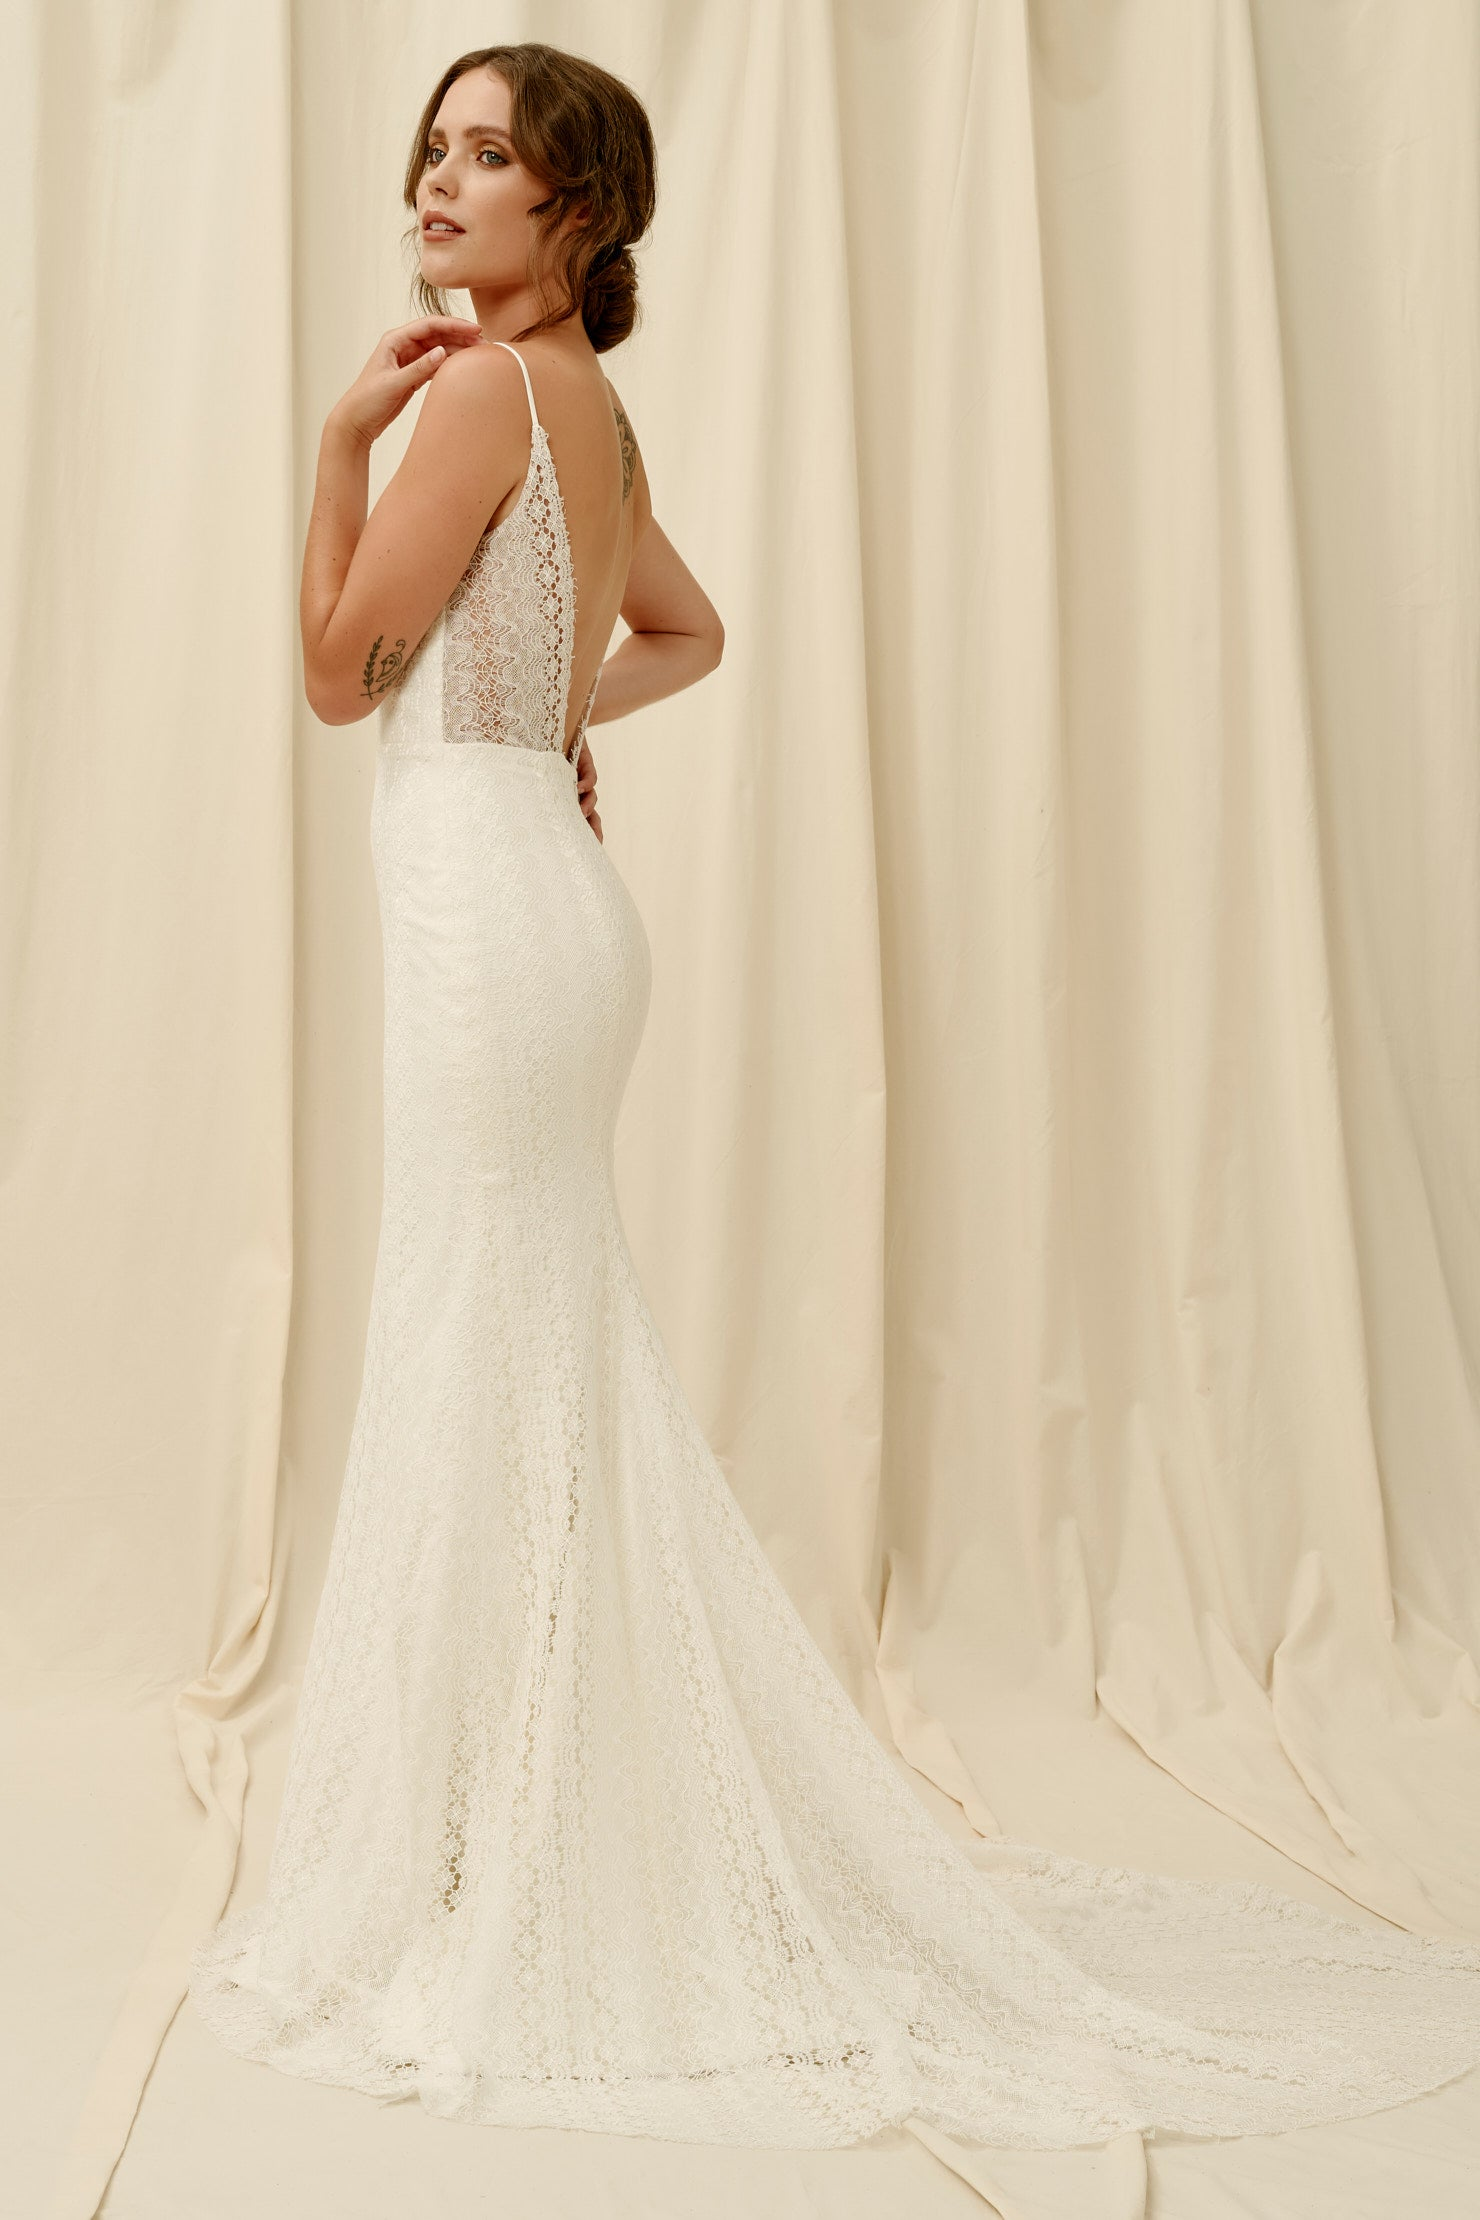 Backless mermaid wedding dress with modern lace